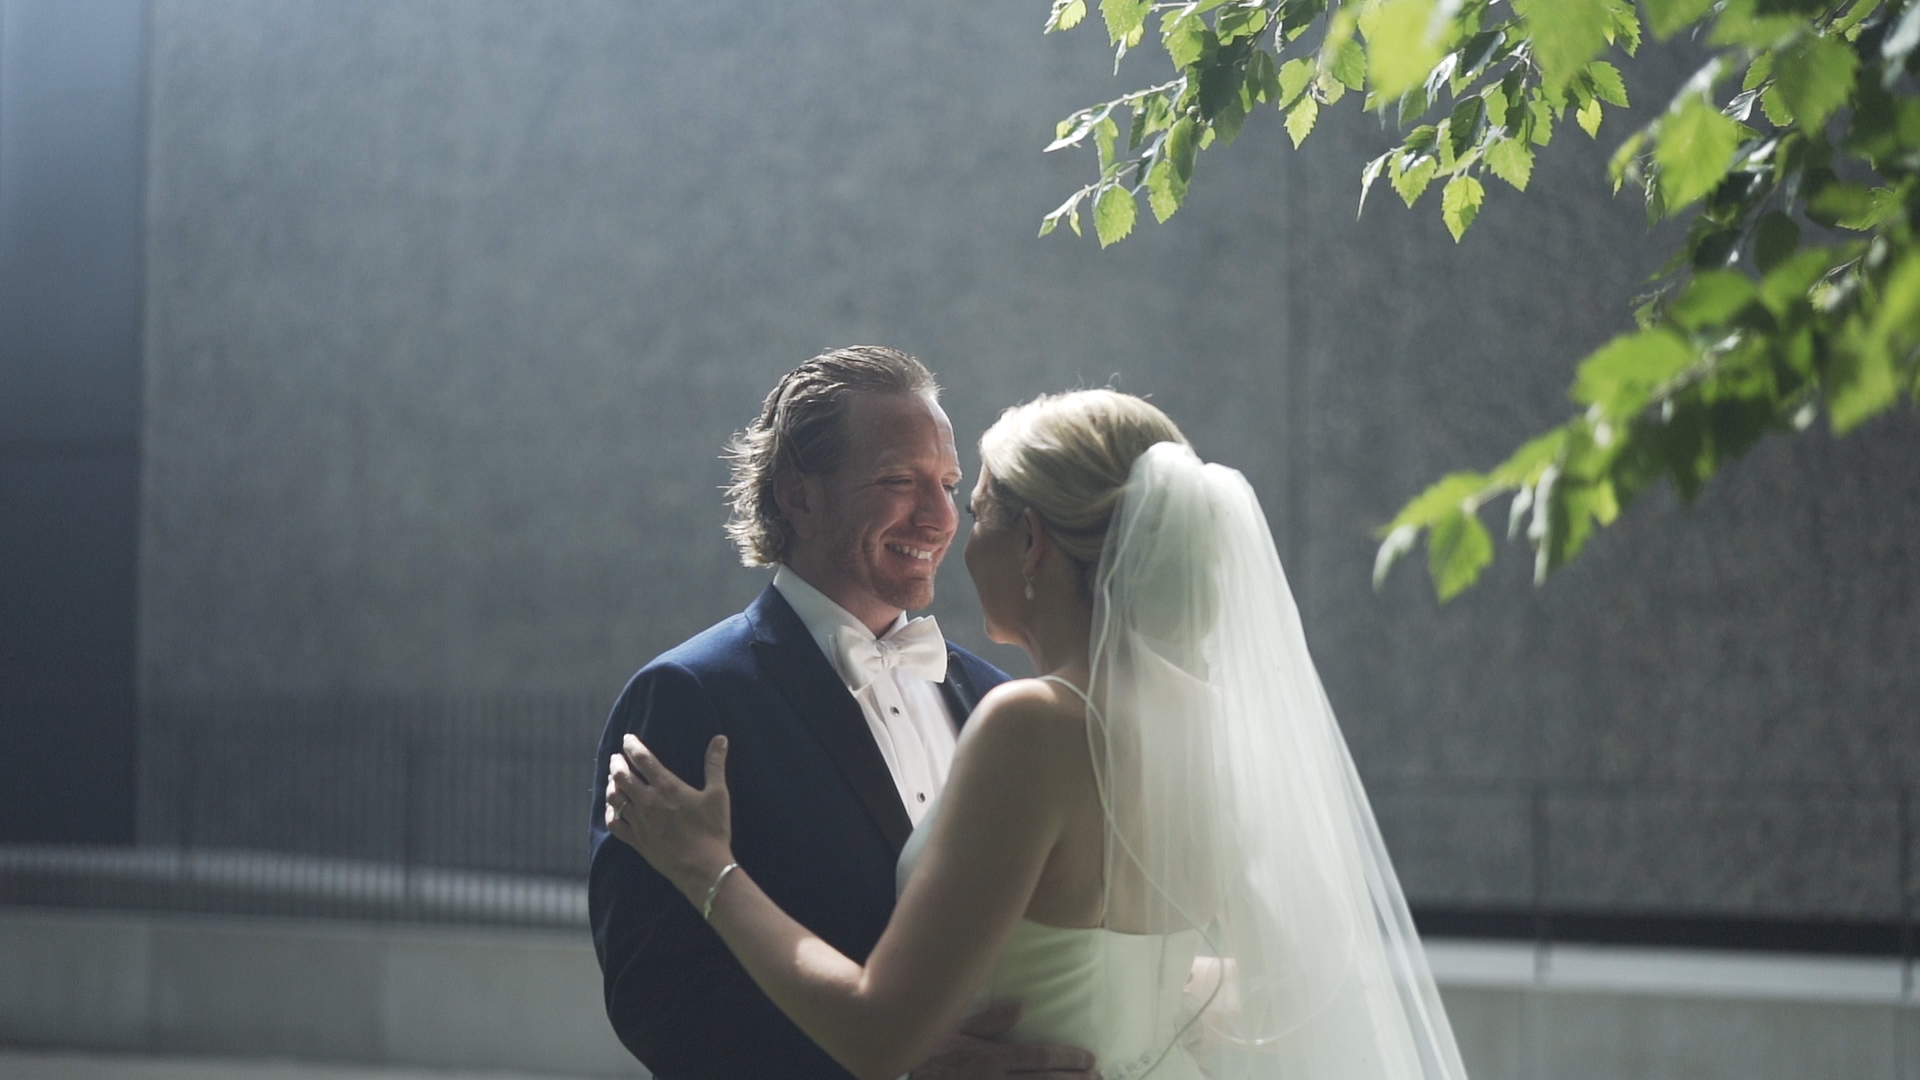 Forest Park Wedding Video - First Look